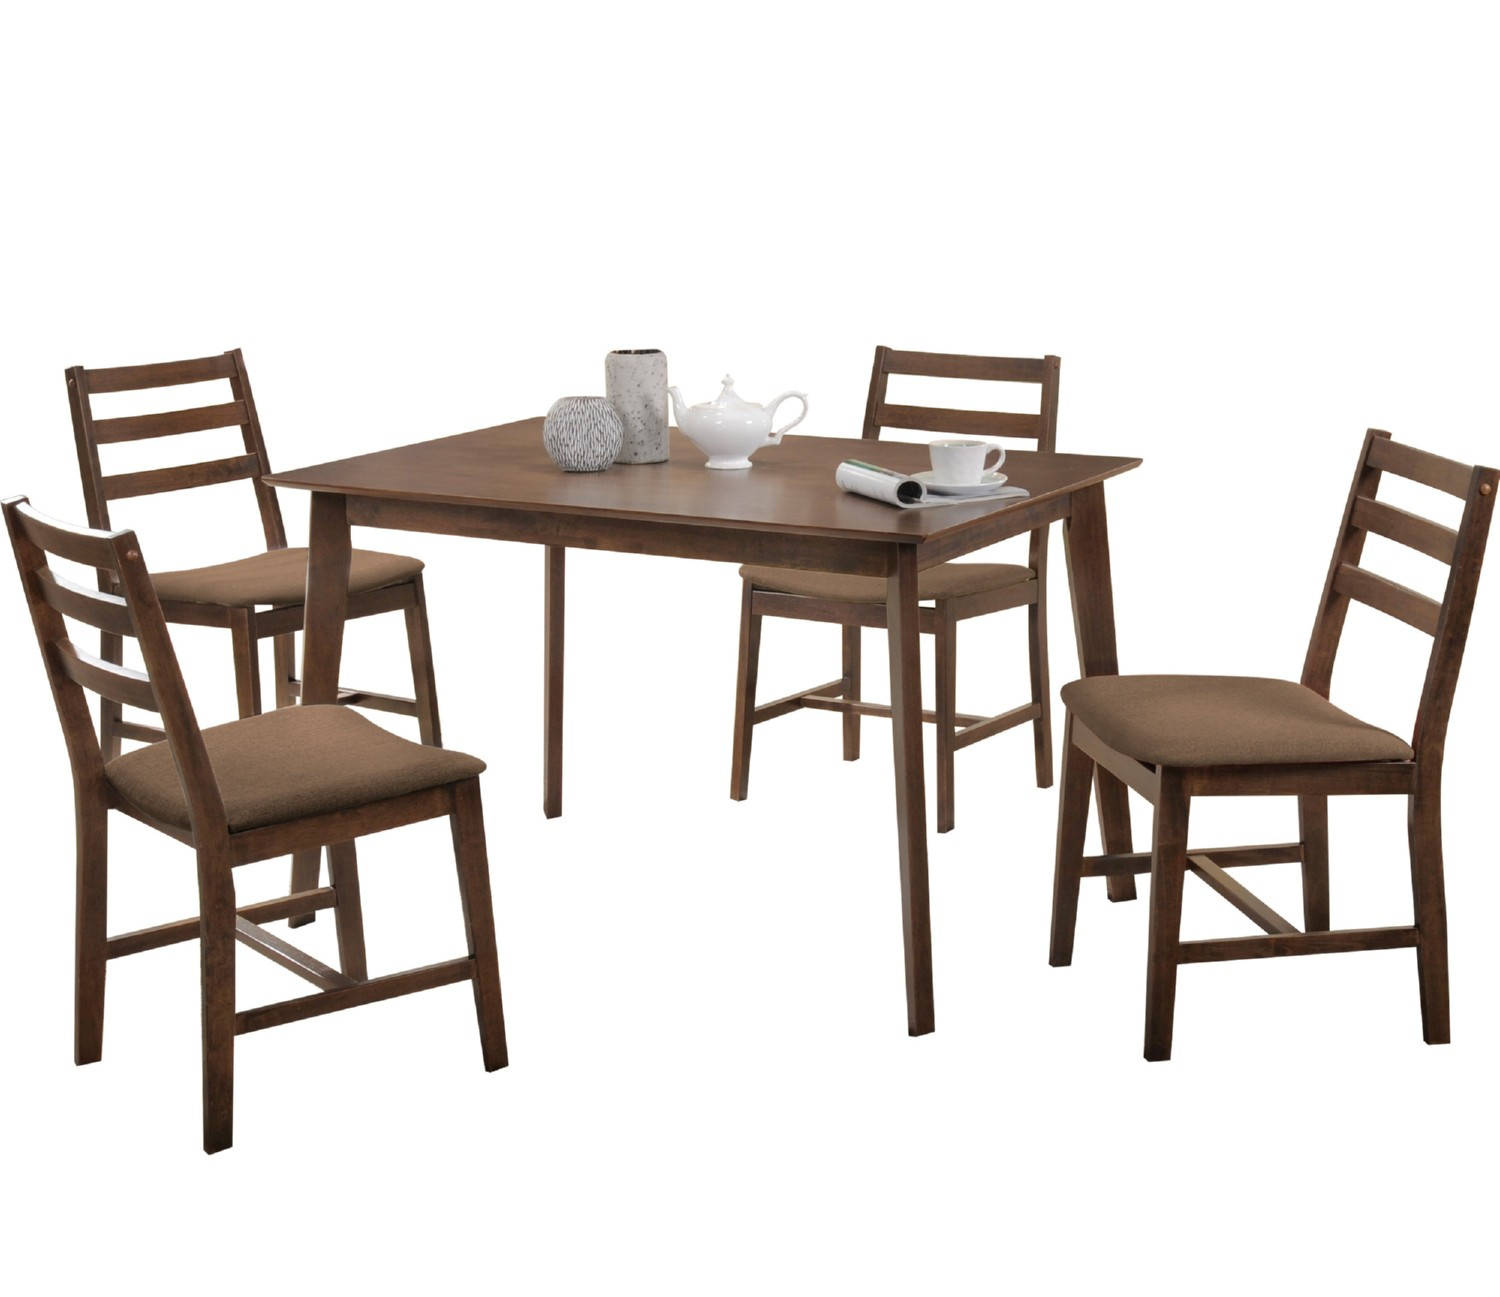 Acme Furniture Gervais 5pc Dining Room Set